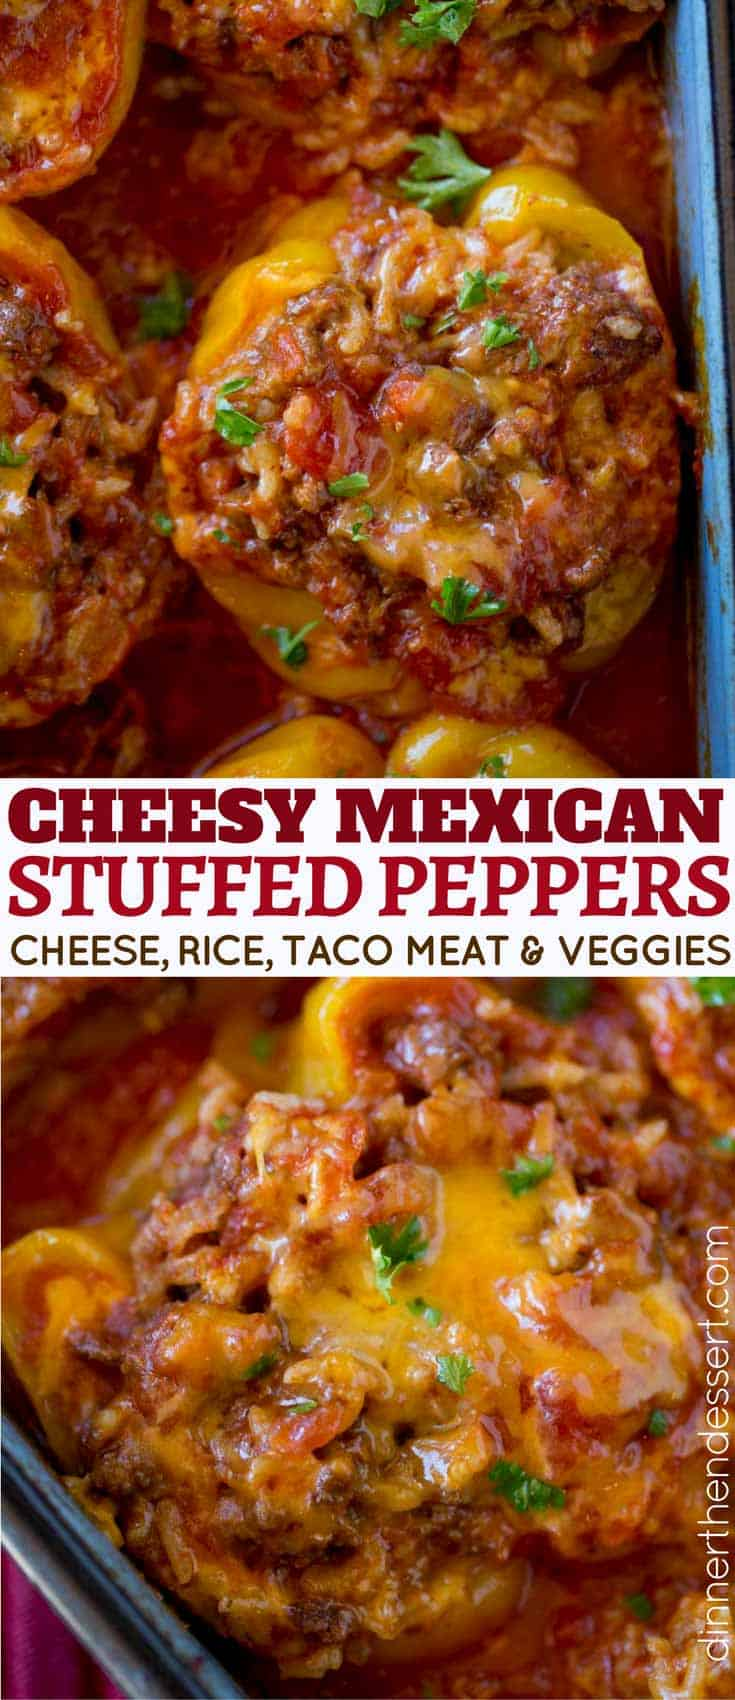 You'll love these Cheesy Taco Stuffed Peppers!